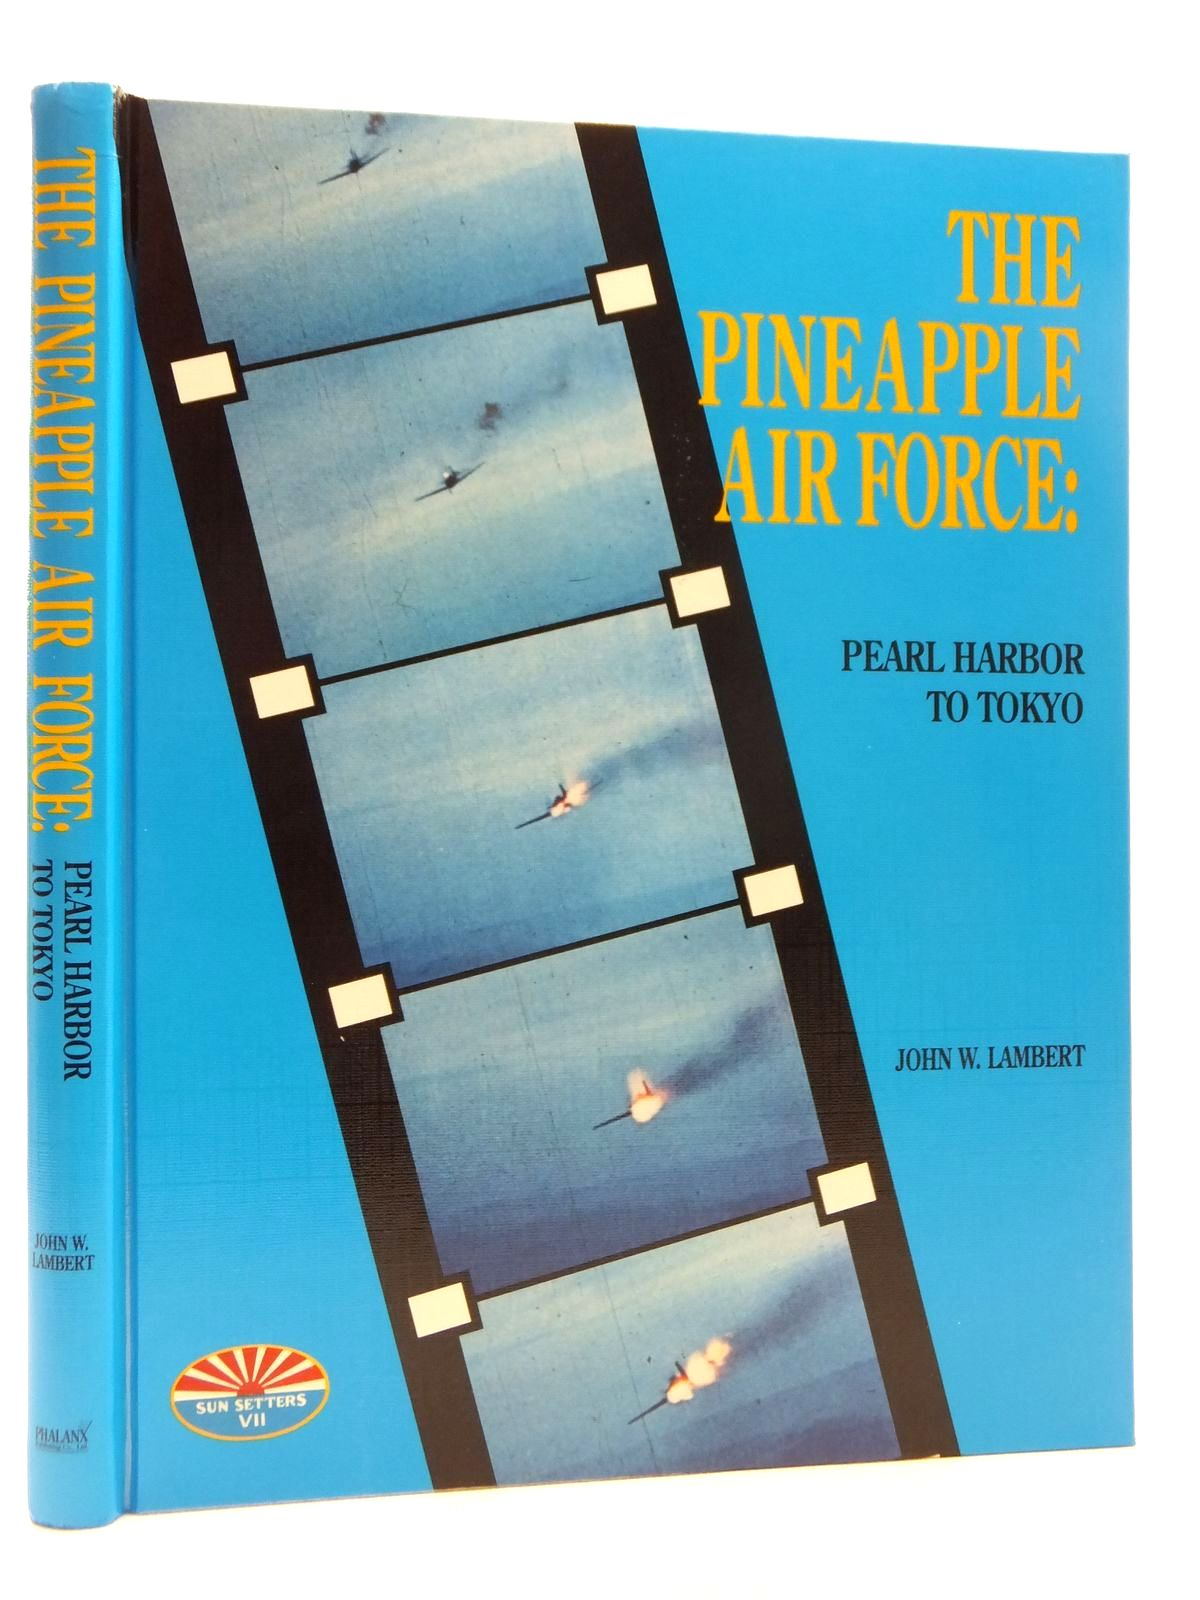 Photo of THE PINEAPPLE AIR FORCE: PEARL HARBOR TO TOKYO written by Lambert, John W. published by Phalanx Publishing Co. Ltd. (STOCK CODE: 1814928)  for sale by Stella & Rose's Books